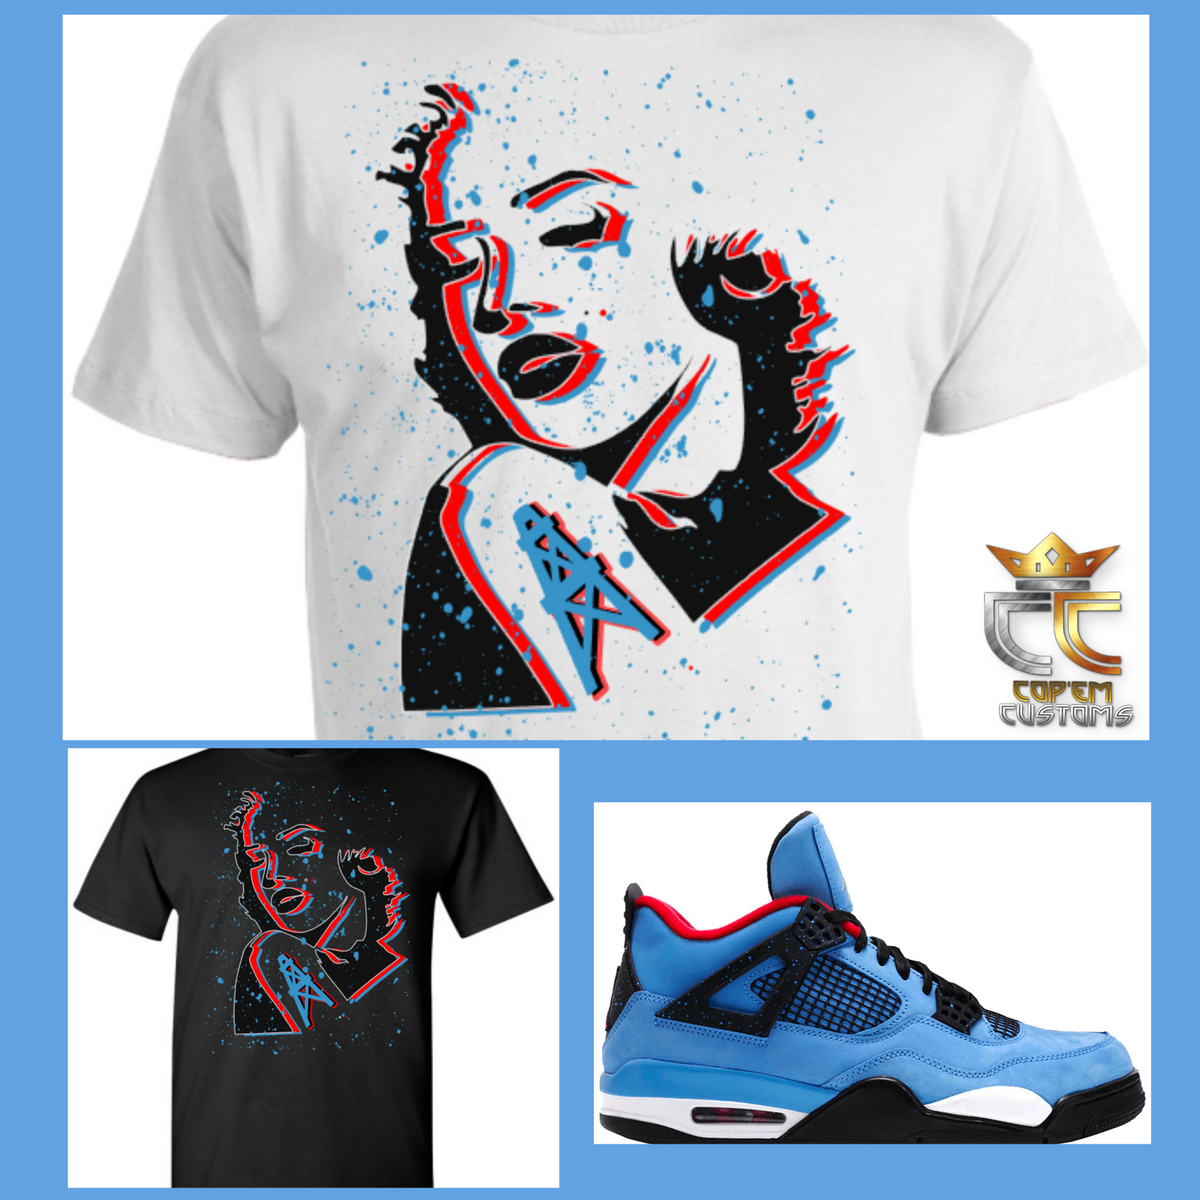 outlet store 034b8 2a18d EXCLUSIVE TEE/T SHIRT 2 to match AIR JORDAN 4 TRAVIS SCOTT CACTUS JACK  OILERS or ANY BRED UNC PANTONE COLUMBIA BLUE COLORWAYS